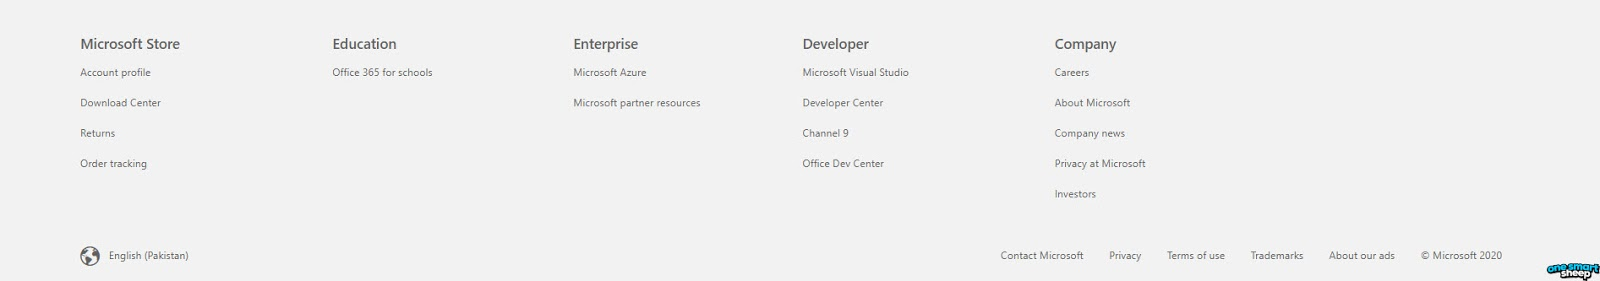 Microsoft Website Footer